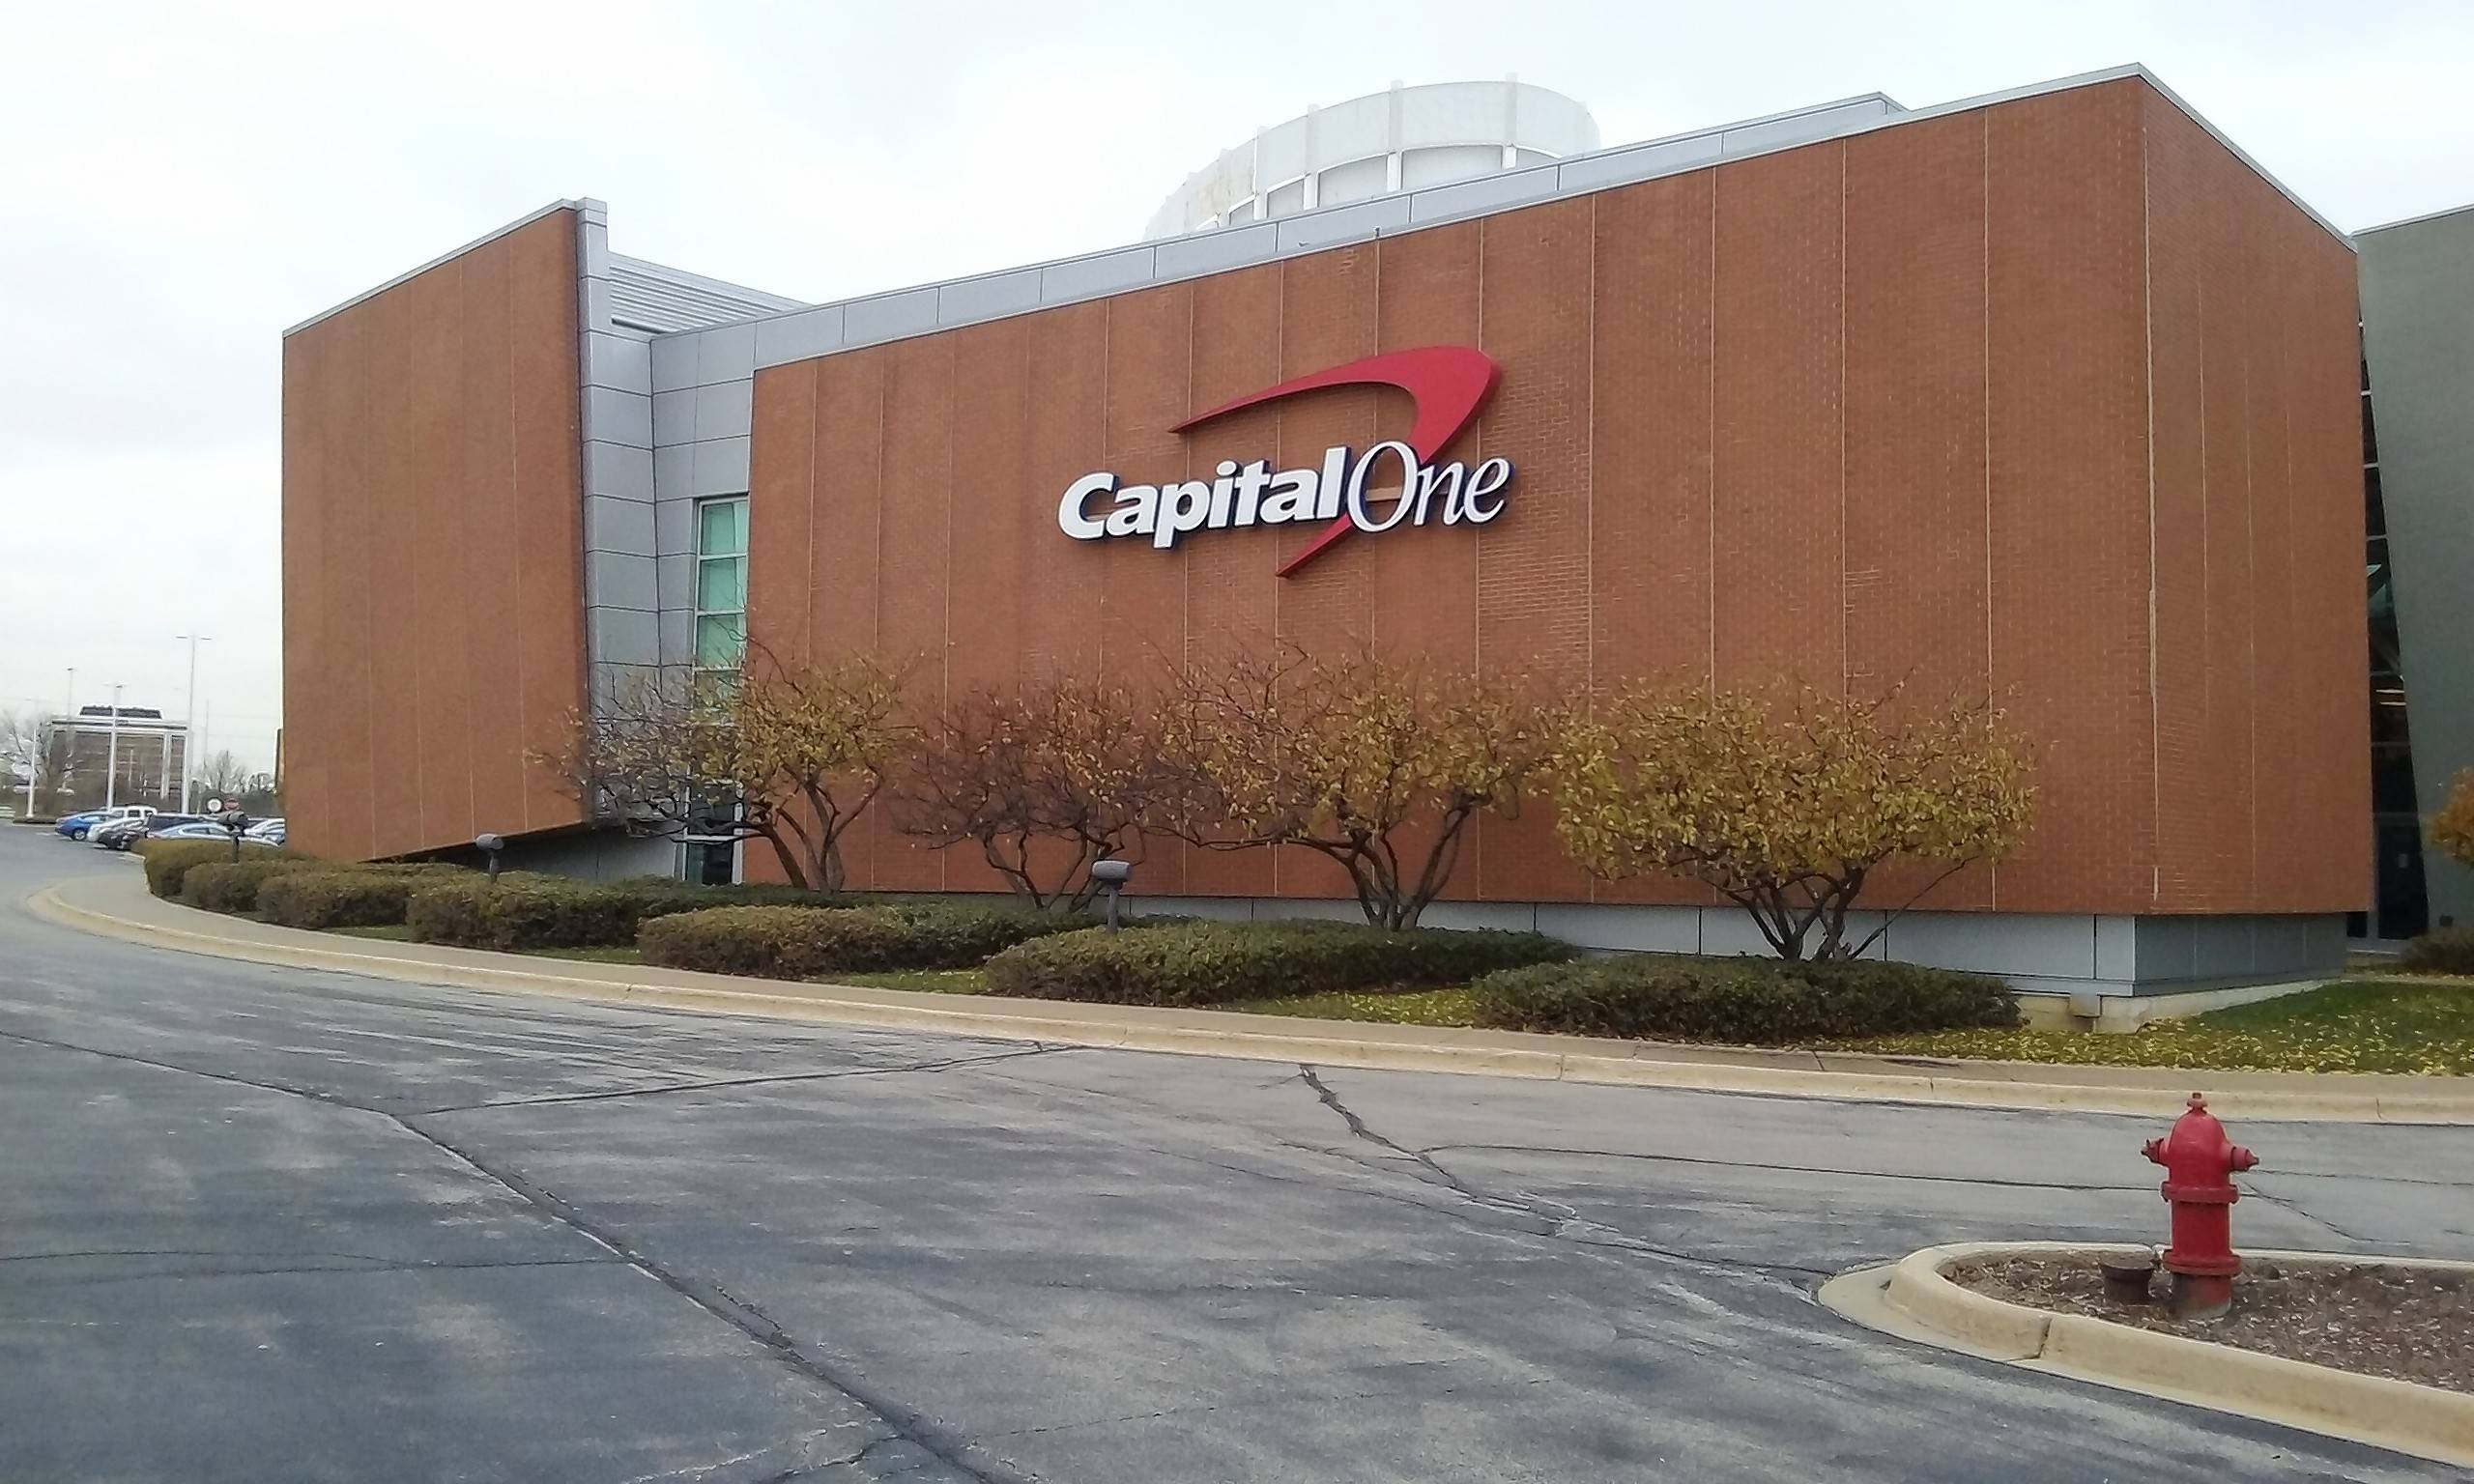 Capital One plans to lay off 452 workers from this Rolling Meadows call center starting next month amid declining call volumes.